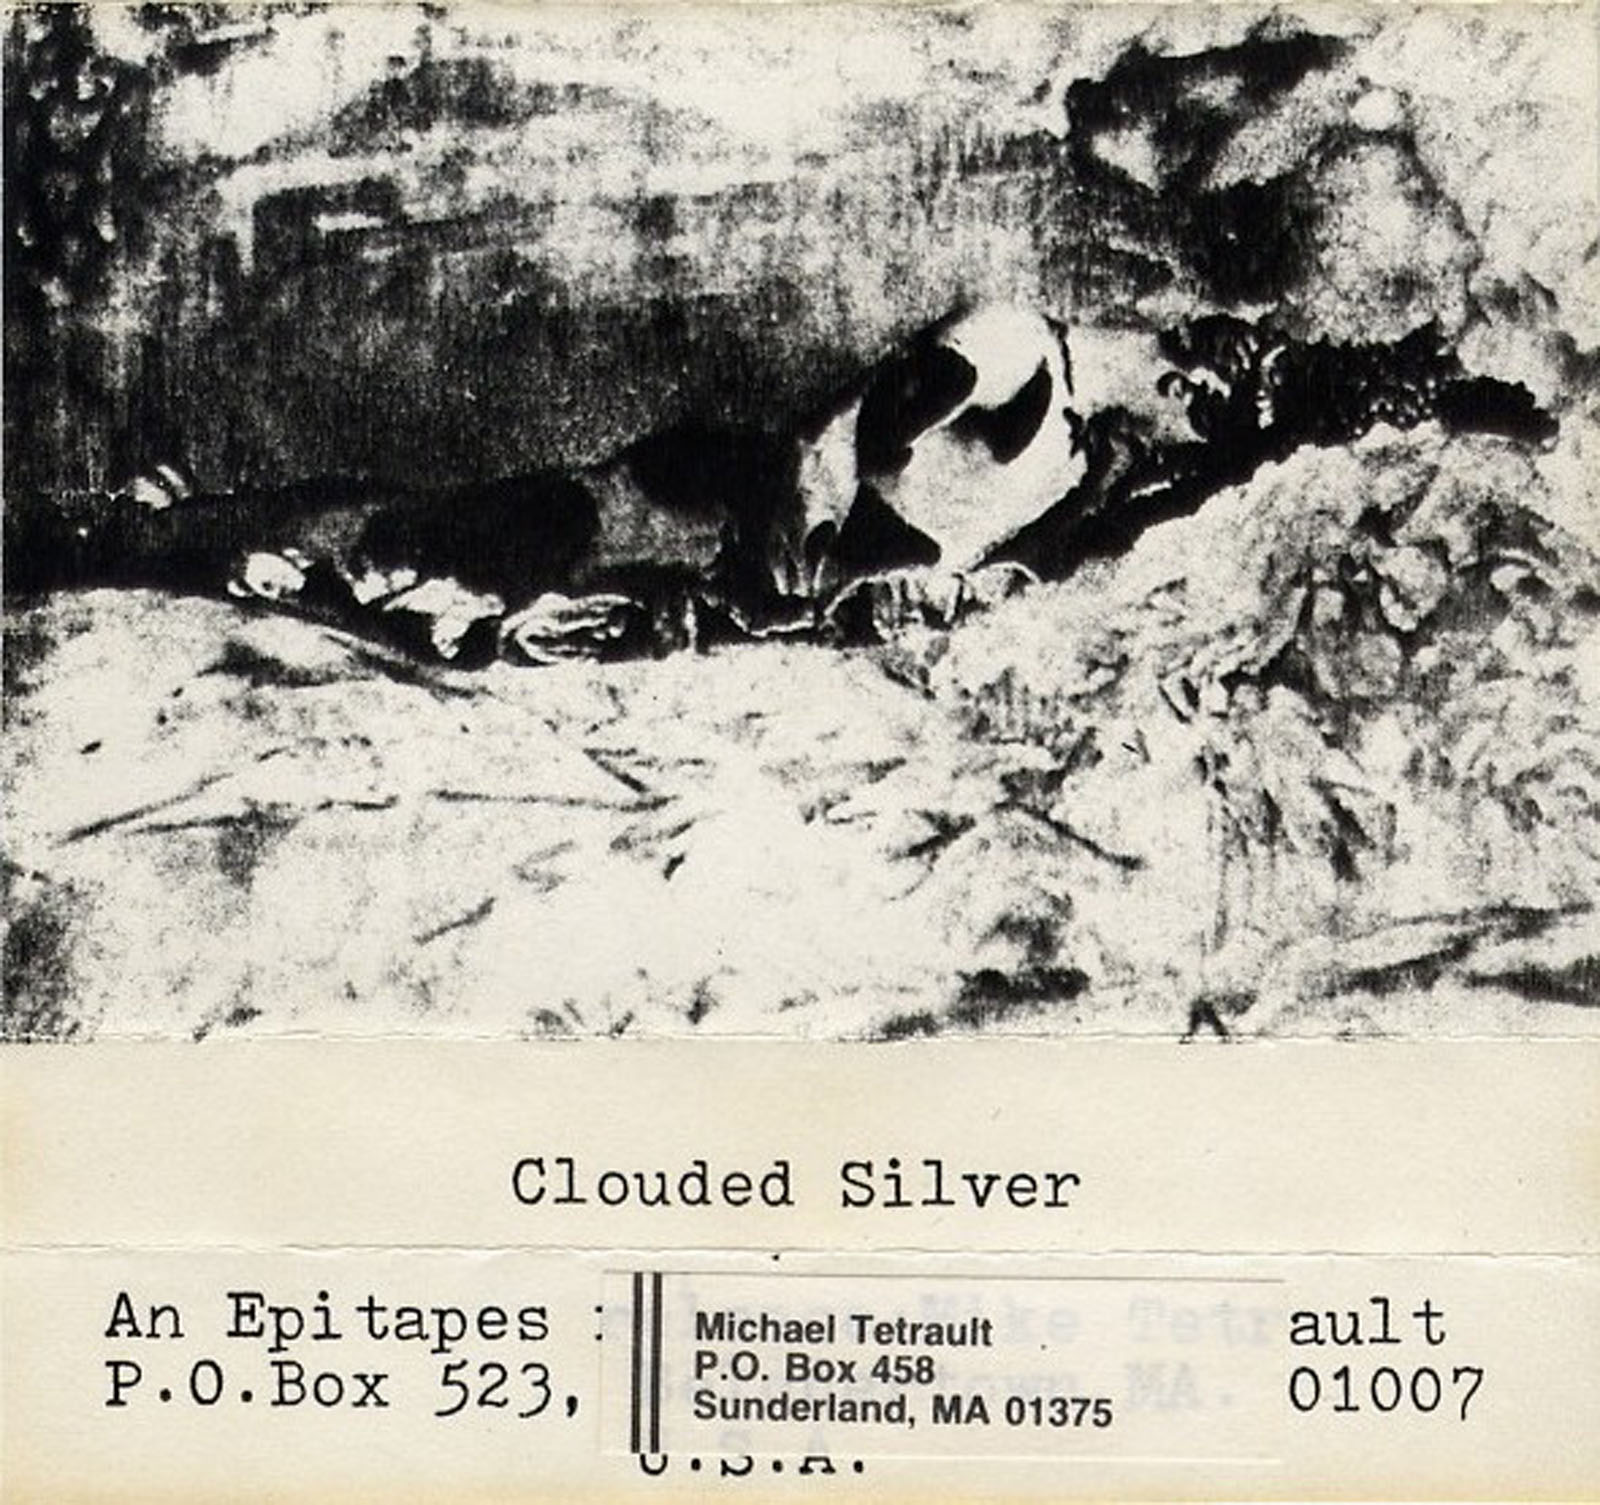 VARIOUS – CLOUDED SILVER (EPITAPES, CASSETTE C-90, COMPILATION, 19??) (MP3 320)